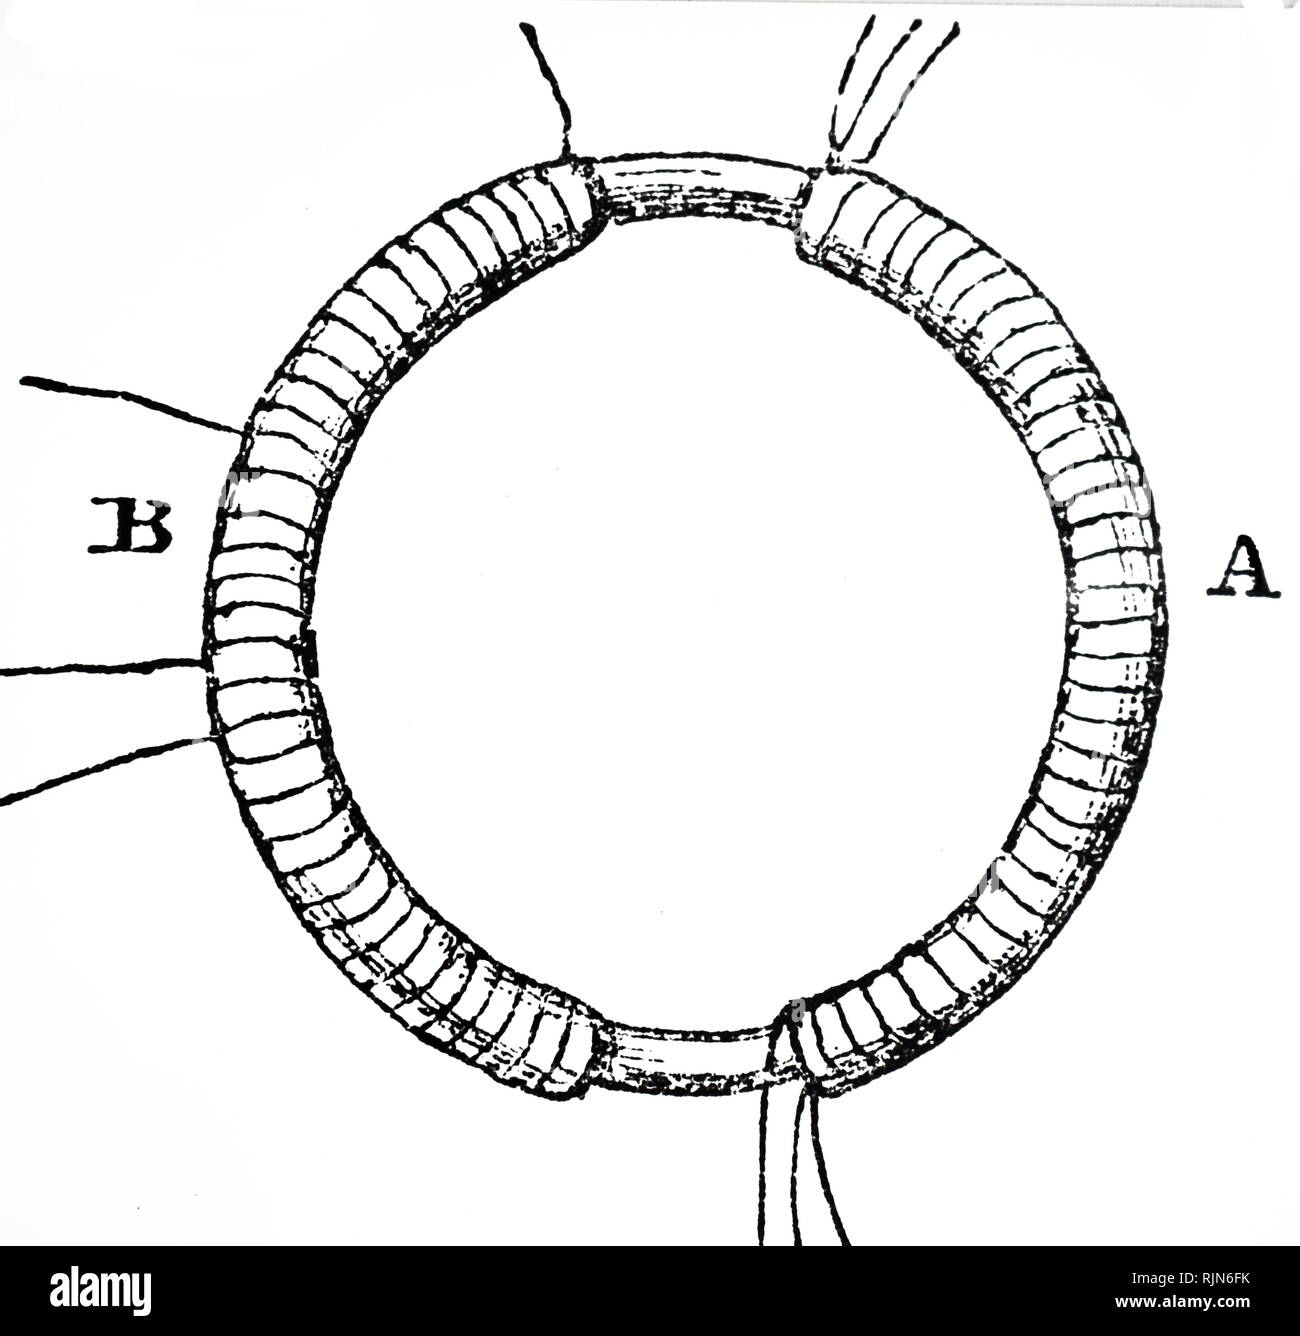 Illustration showing The first transformer. The iron ring is wound with two separate coils of wire, A and B. Both coils are wired in sections. Current through A from a battery induces a current in B. Engraving after a sketch in Faraday's notebook. From Bence Jones 'The Life and Letters of Faraday', London; 1870 - Stock Image